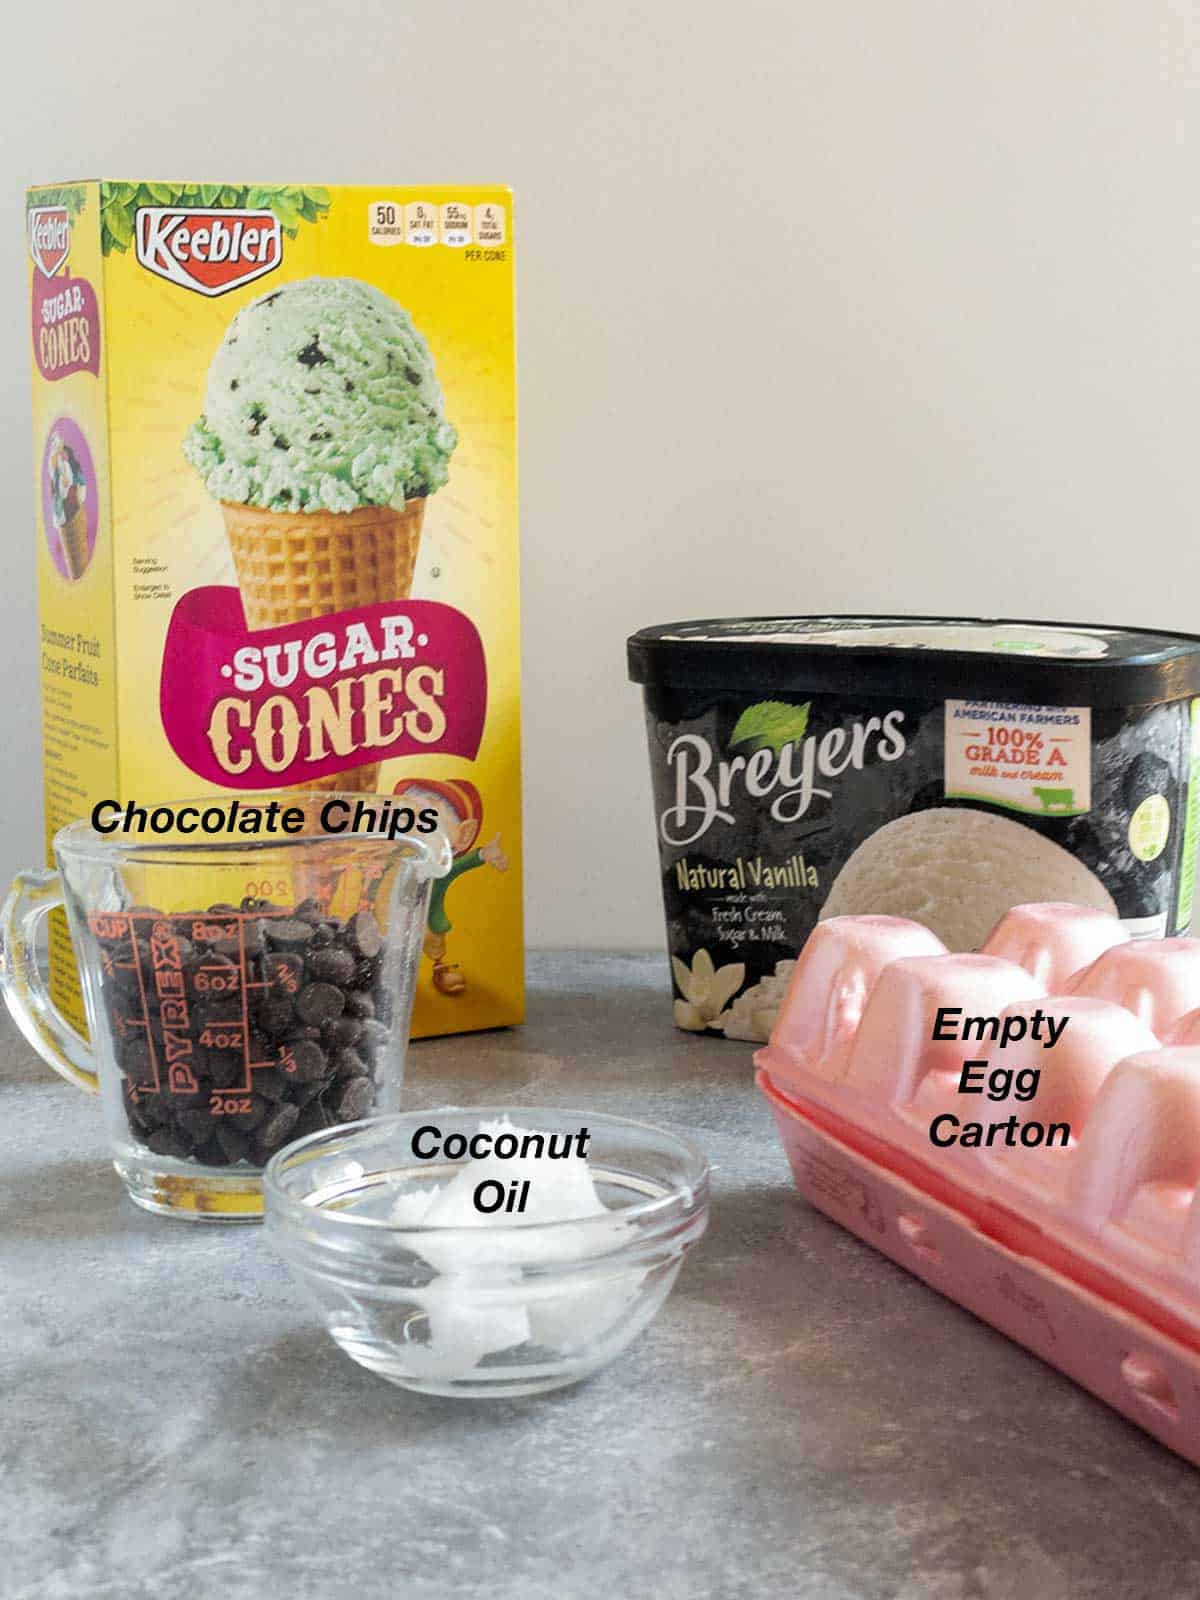 Ingredients for Hold the Cone